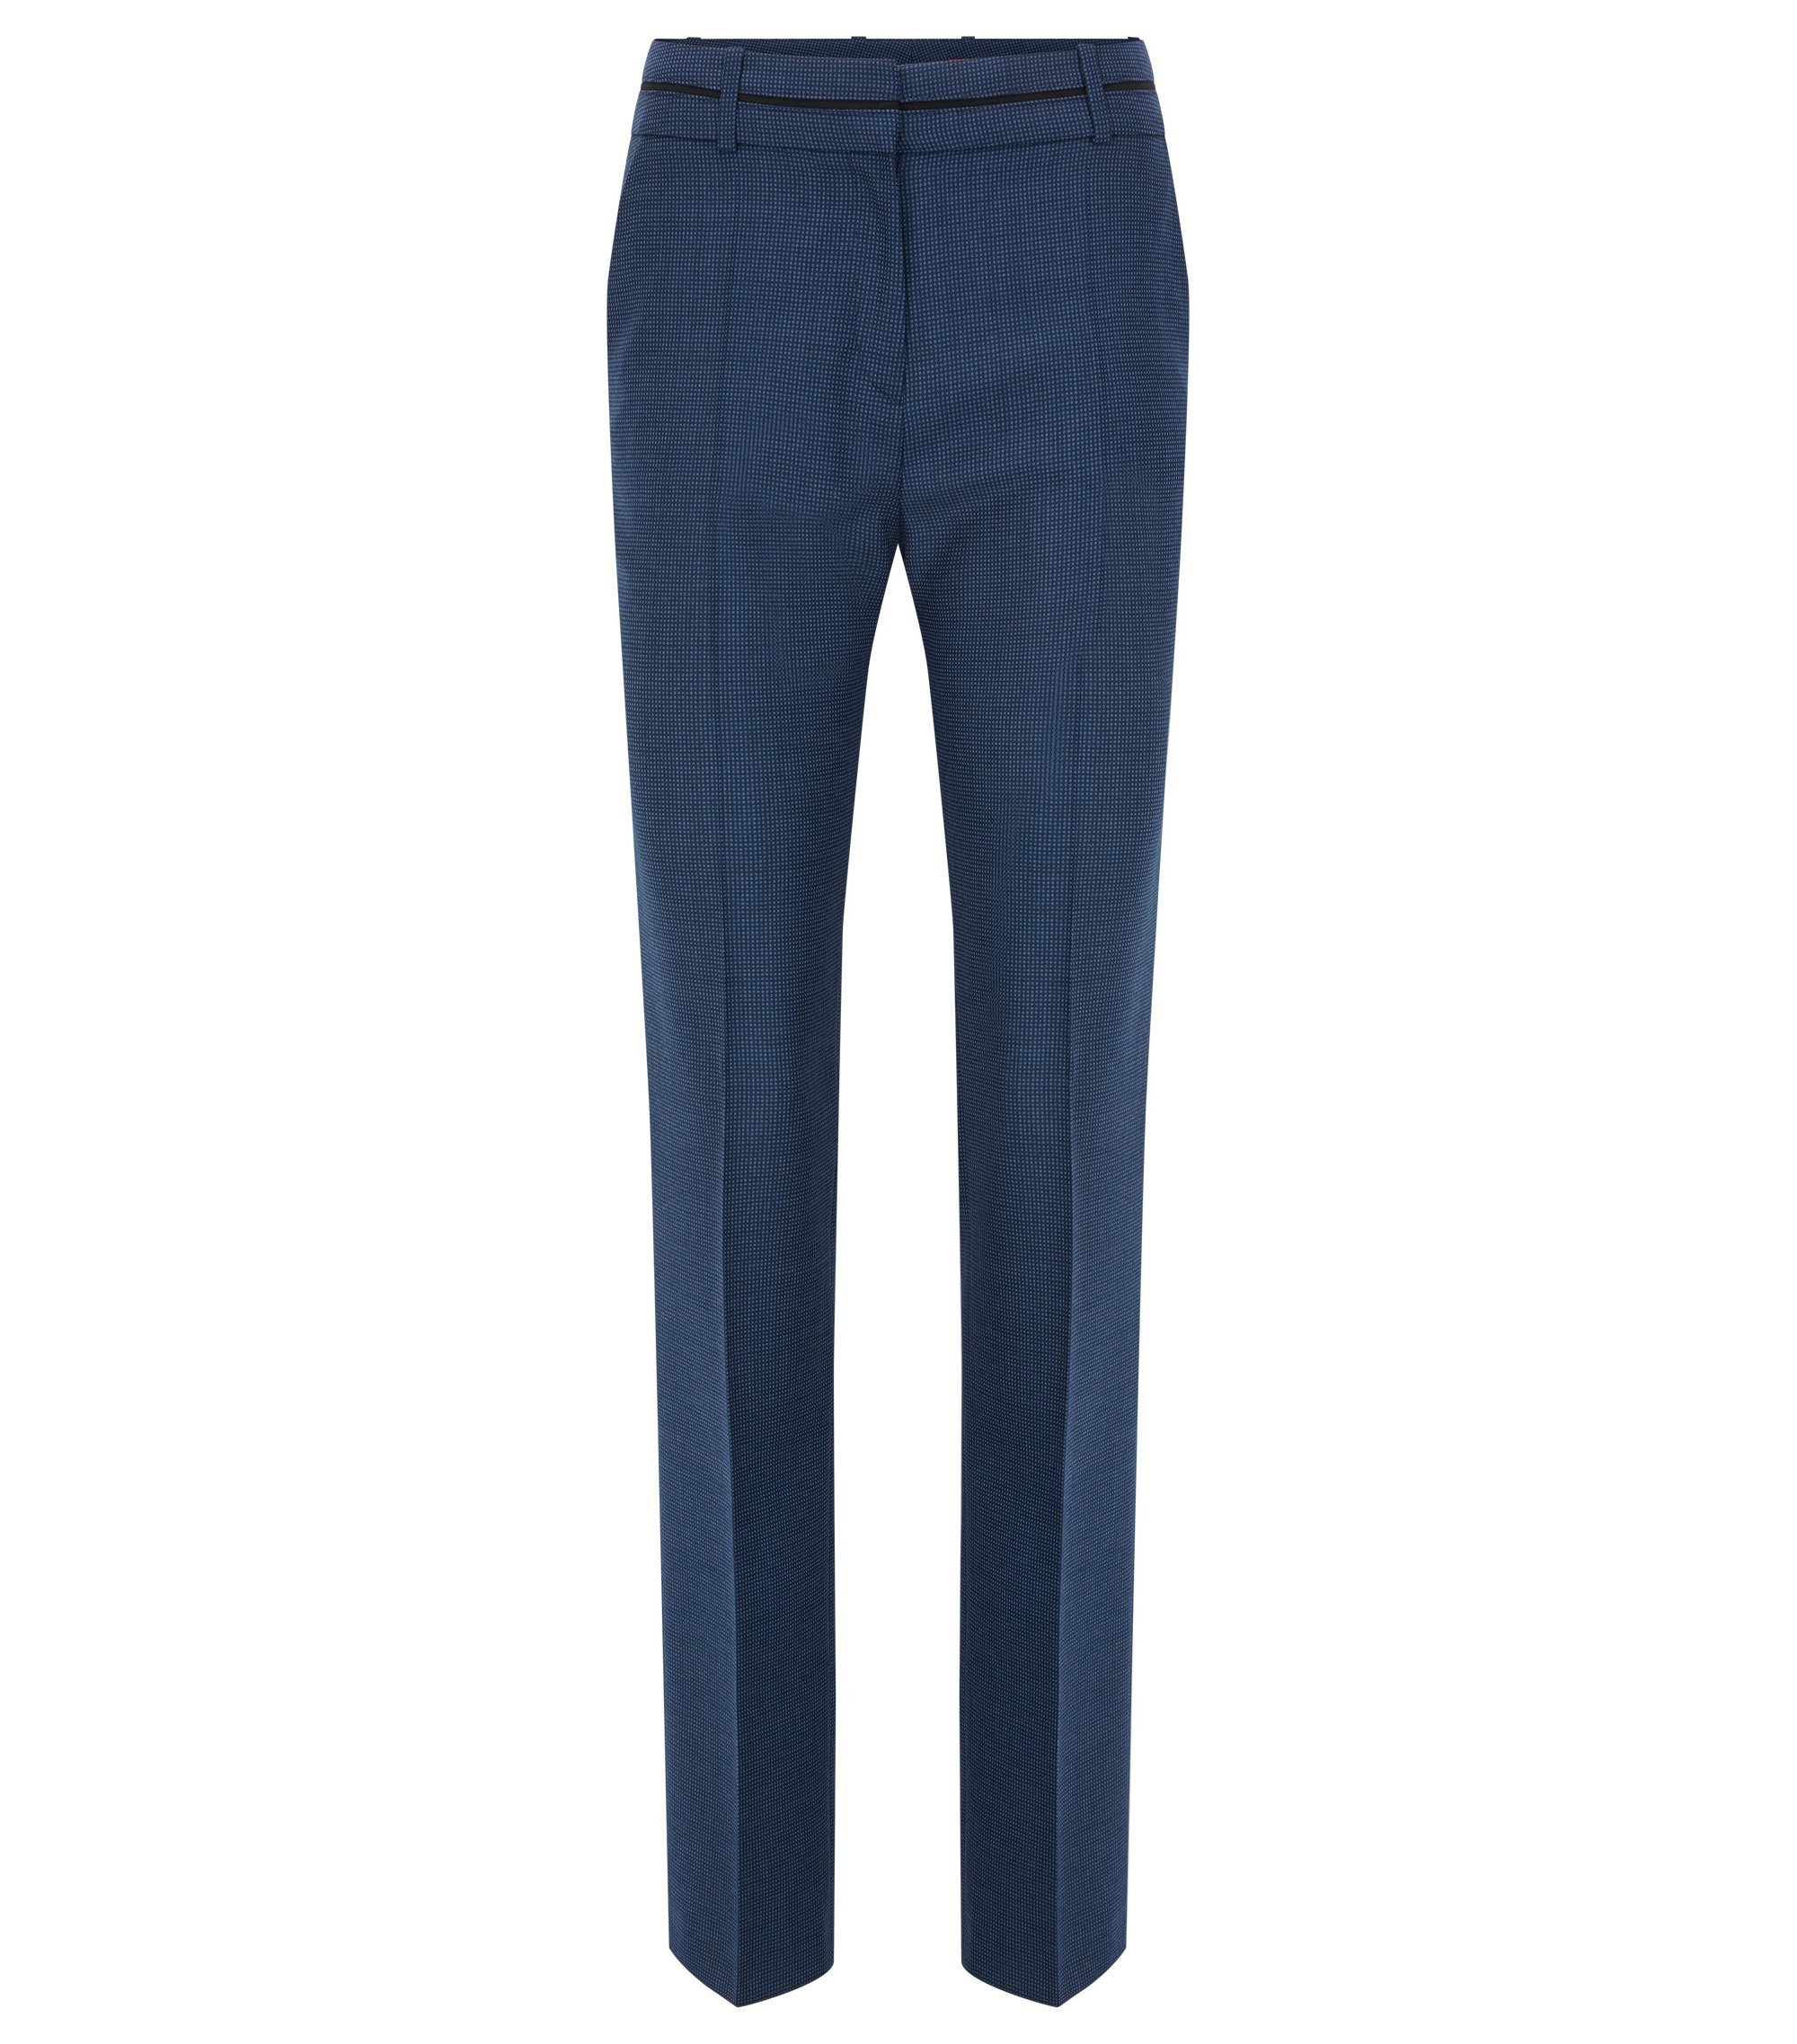 Regular-fit trousers in patterned virgin wool, Blue